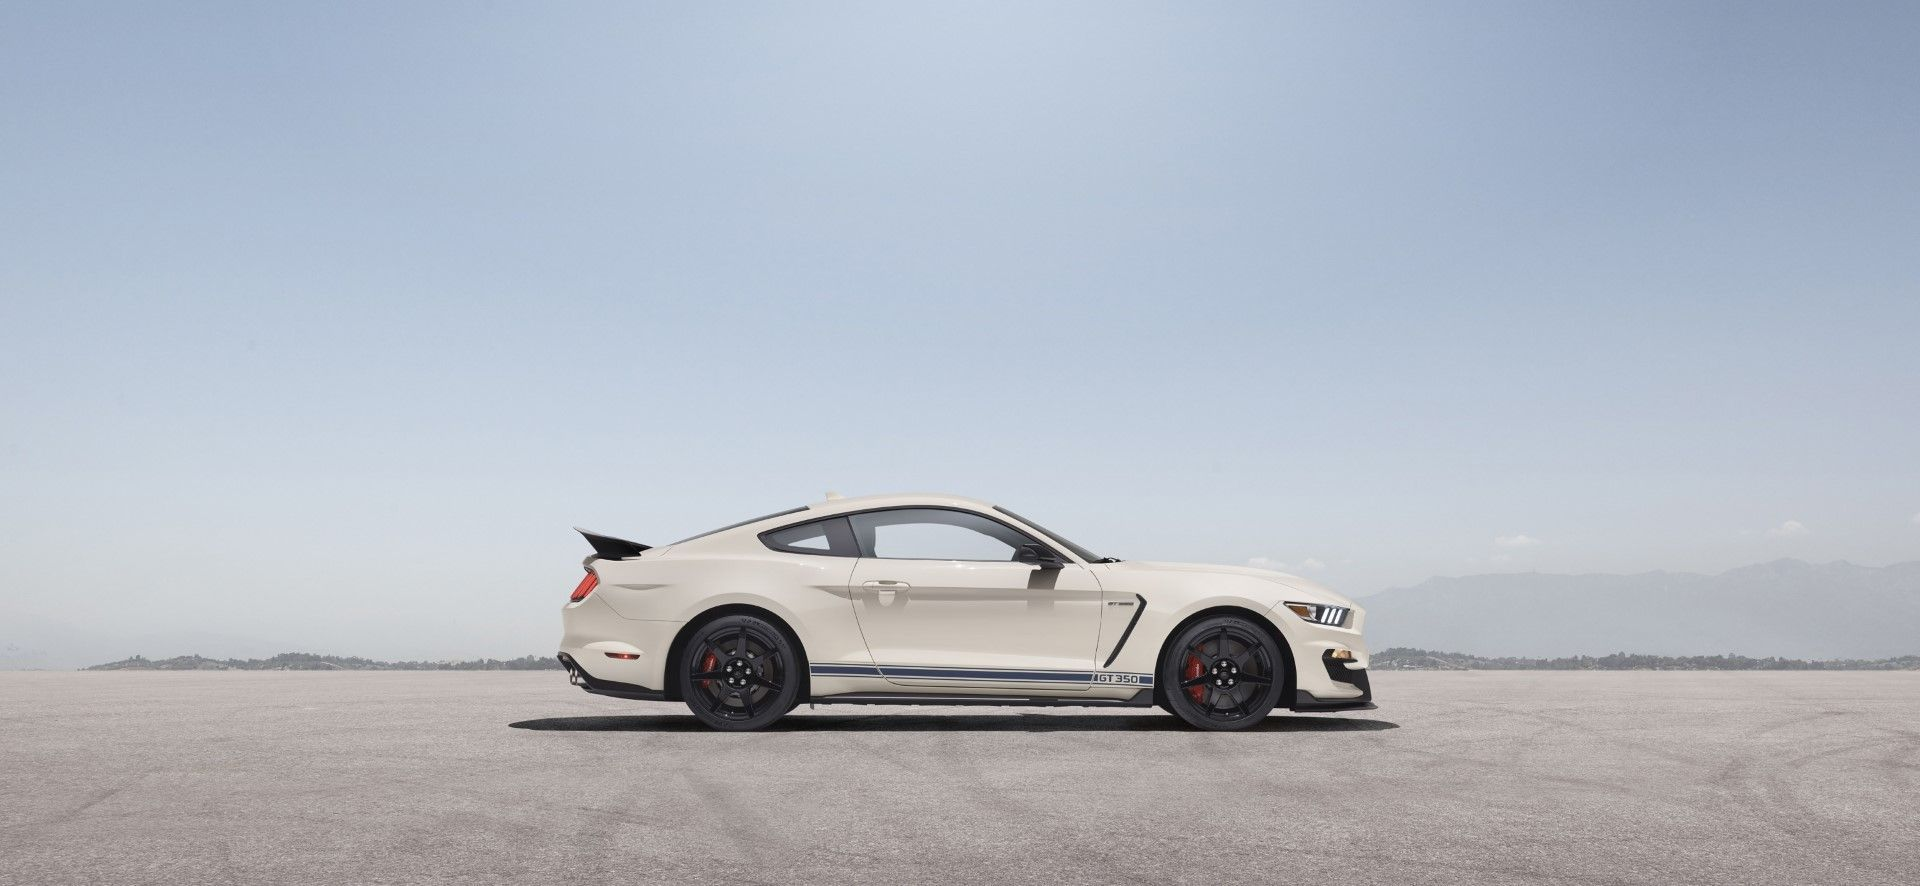 2020 Mustang Shelby Gt350 Heritage Edition Mustang Shelby Ford